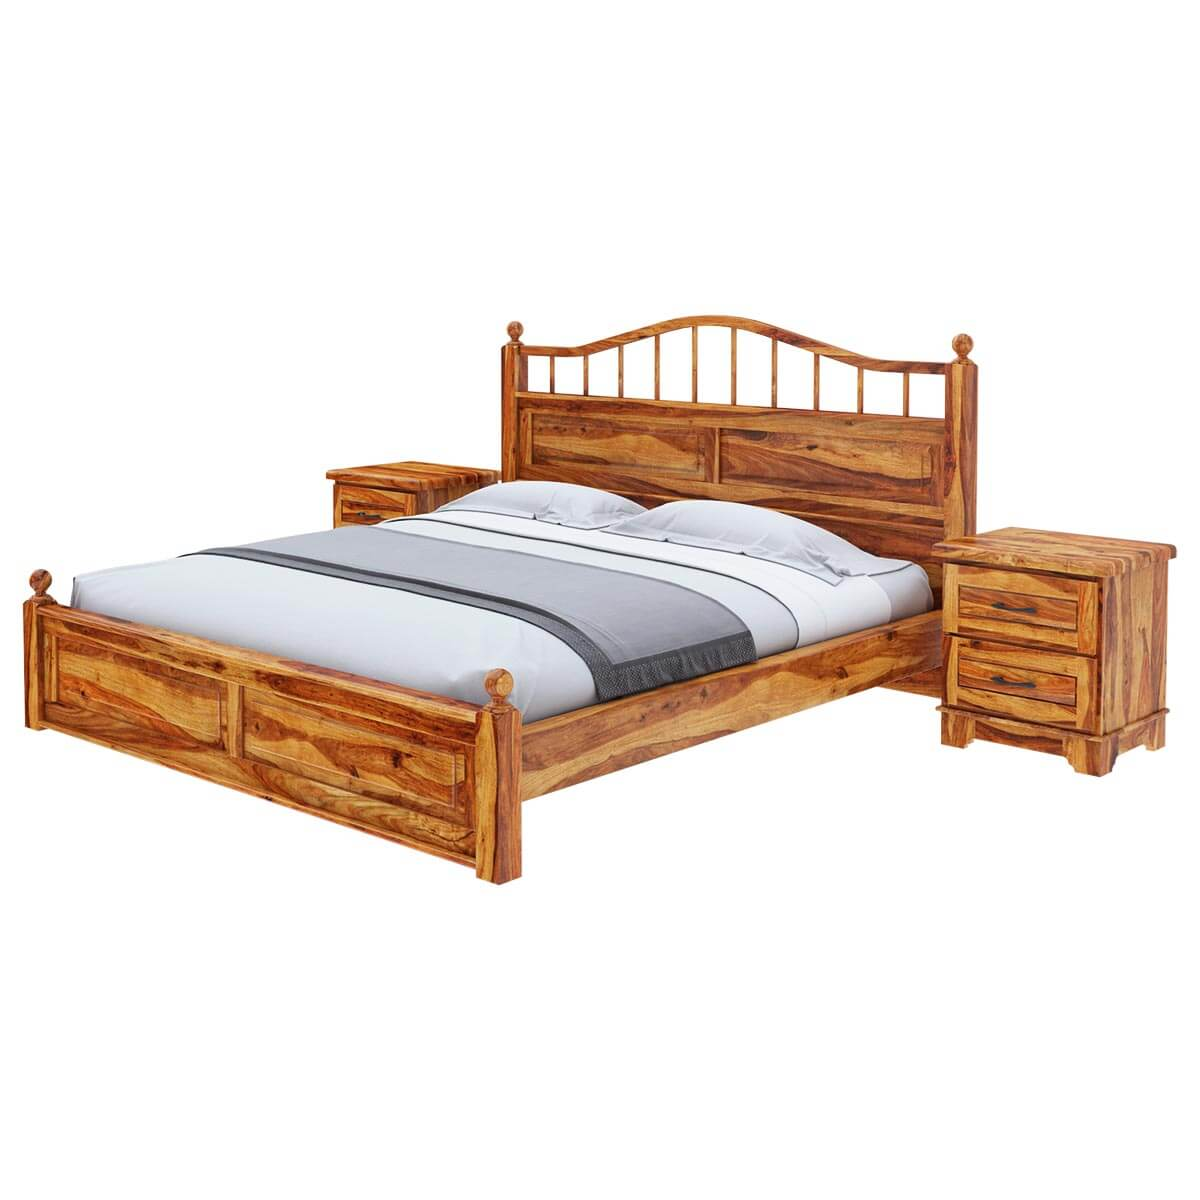 Colonial rail top solid wood king size platform bed frame Wood platform bed